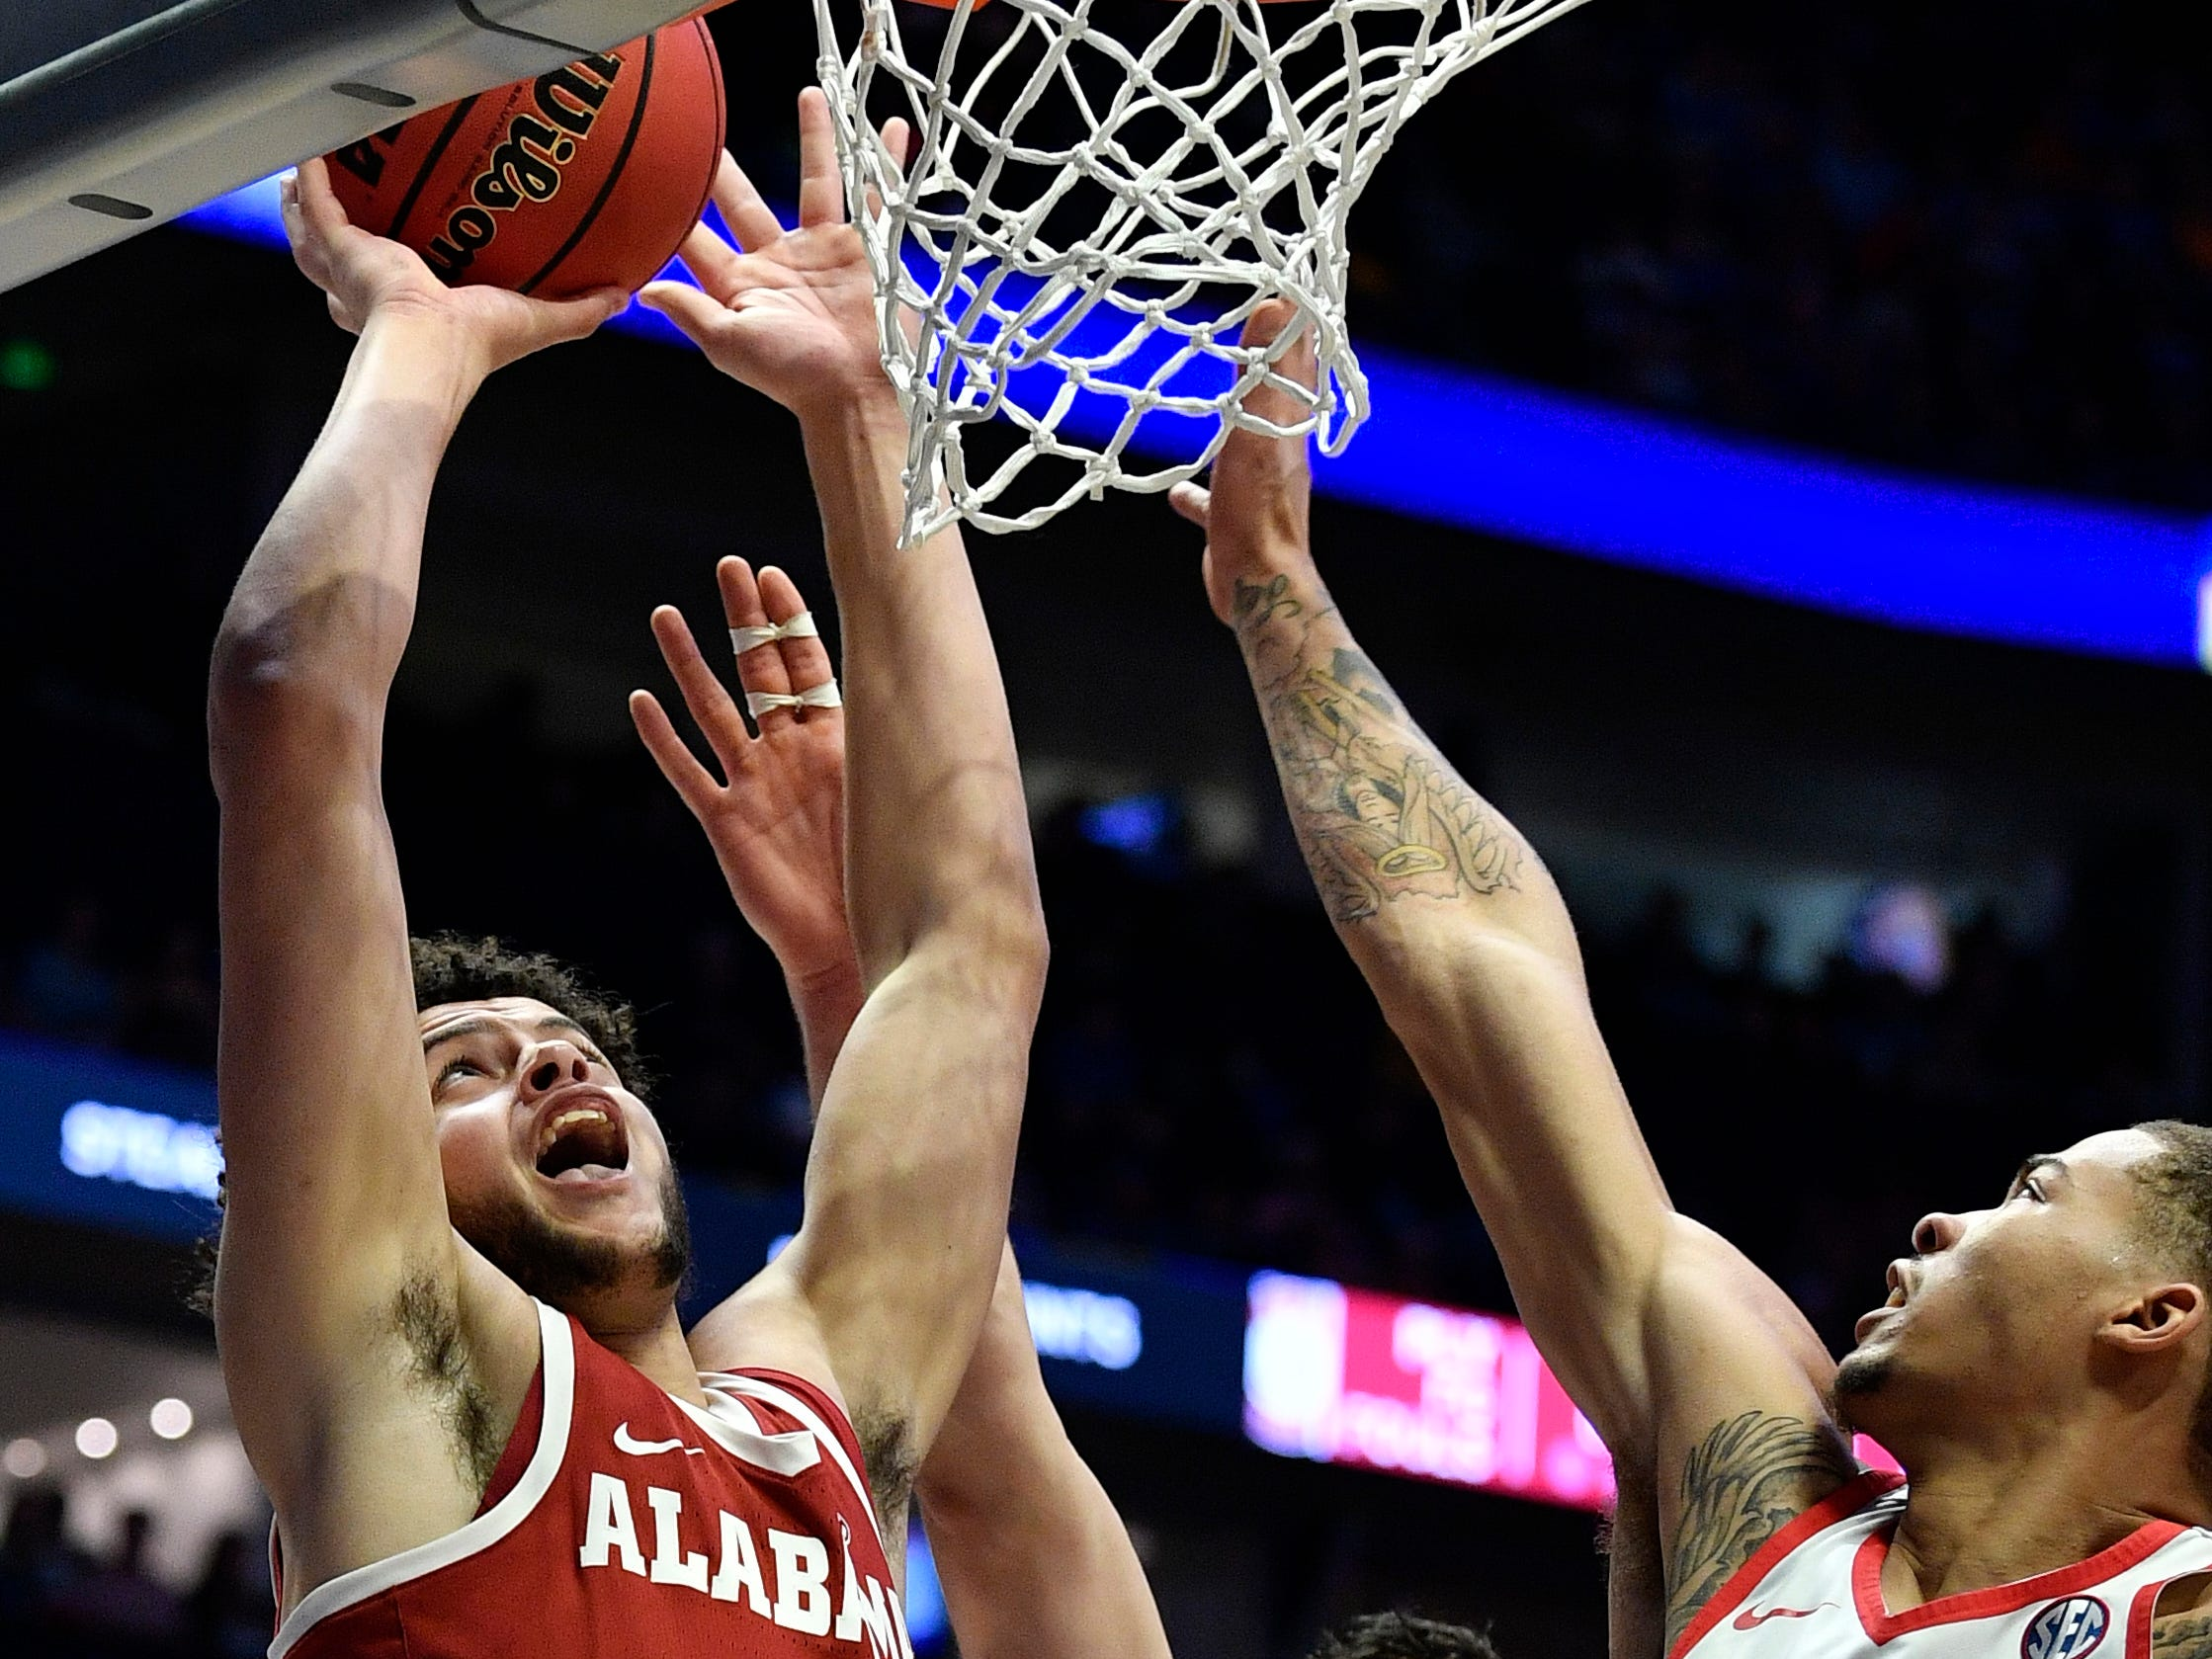 Alabama forward Alex Reese (3) goes up for a shot defended by Ole Miss center Dominik Olejniczak (13) and forward KJ Buffen (14) during the first half of the SEC Men's Basketball Tournament game at Bridgestone Arena in Nashville, Tenn., Thursday, March 14, 2019.